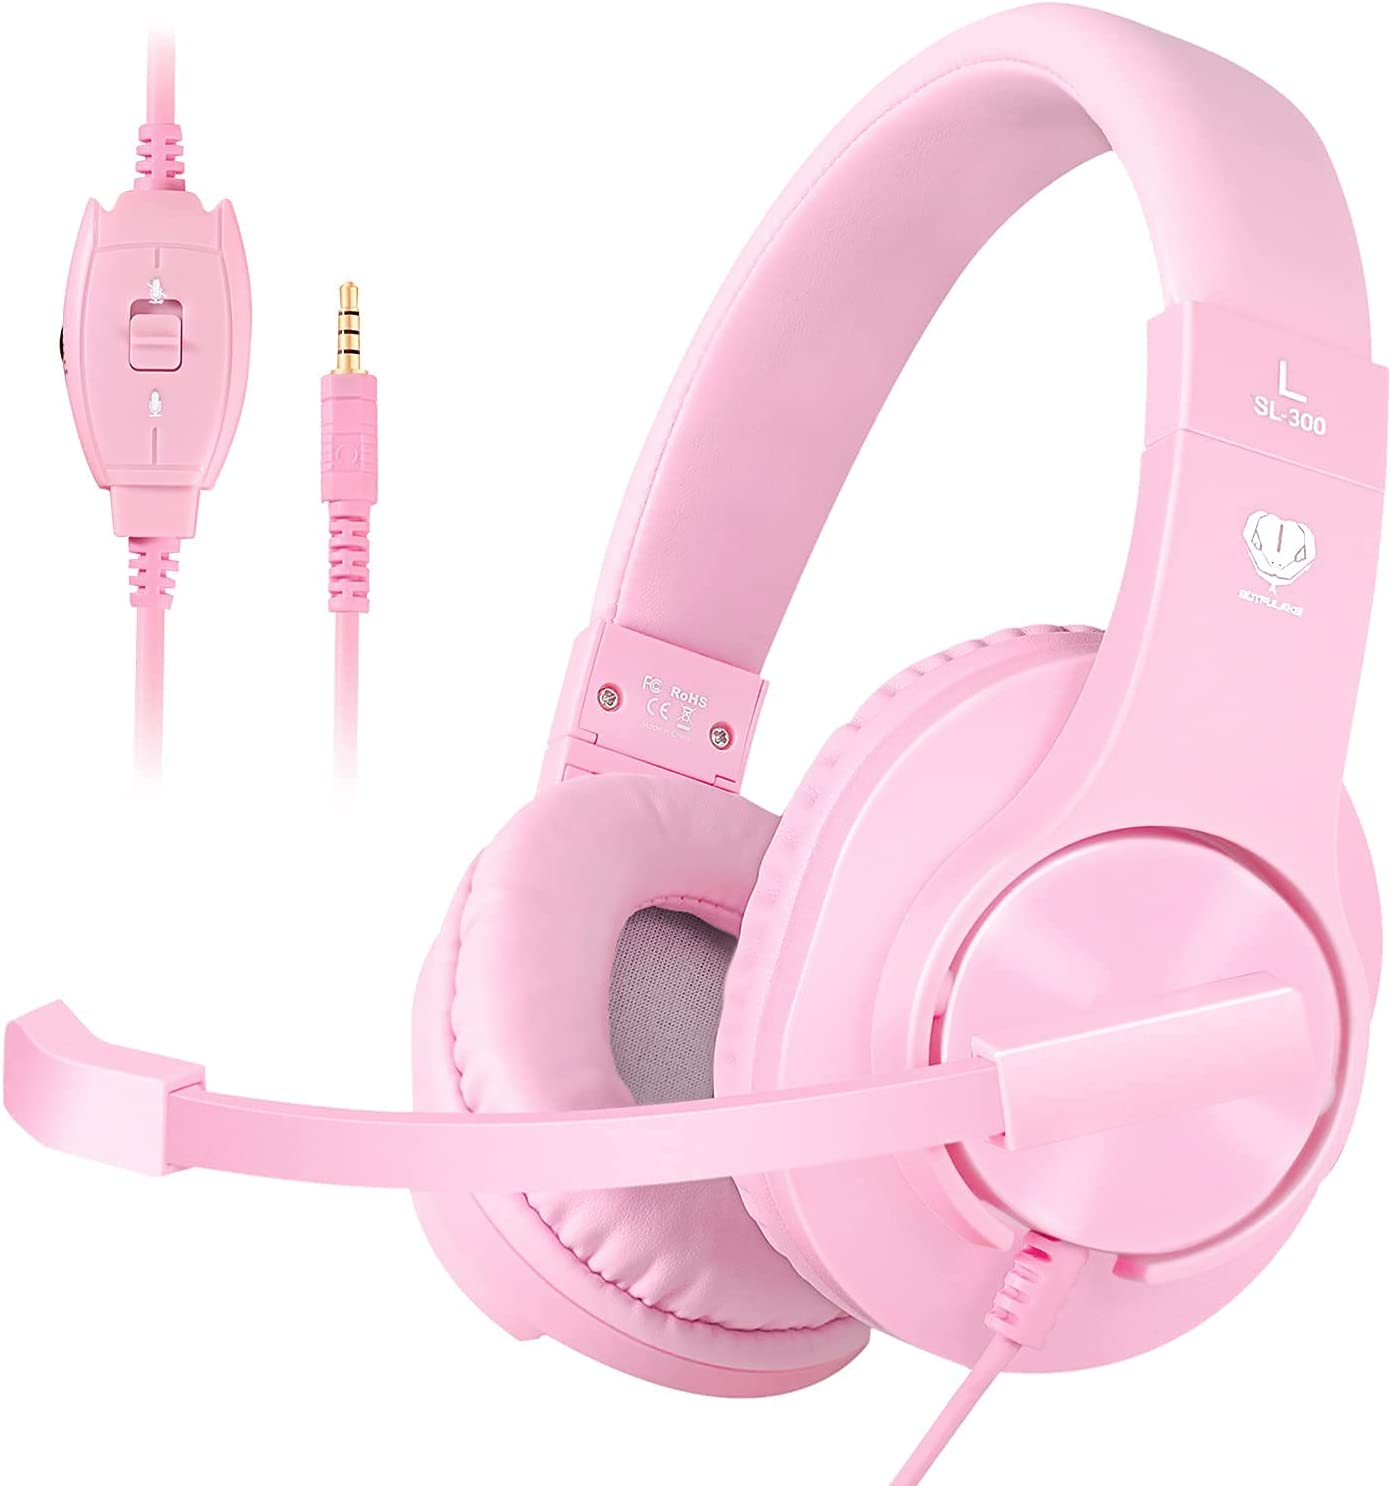 BUTFULAKE Stereo Gaming Headset for PS4, Xbox One, Nintendo Switch, Adjustable Earmuffs and Over-All Noise Isolation, Lightweight 3.5mm Wired Volume Control with Mic for Laptop PC (Pink)